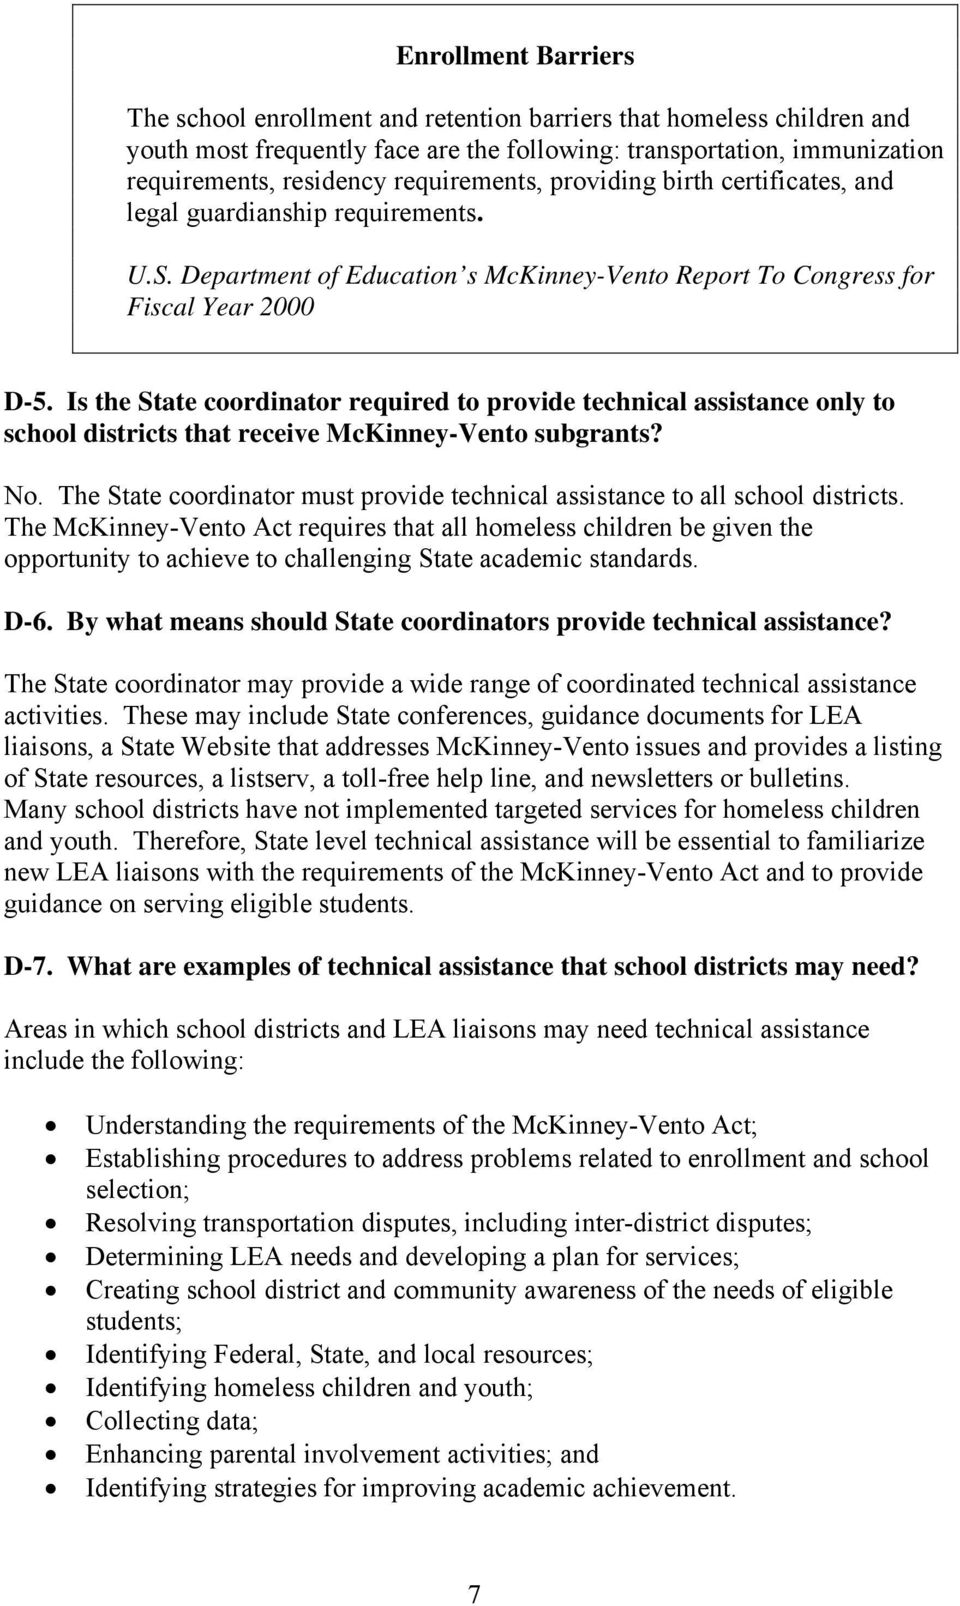 Is the State coordinator required to provide technical assistance only to school districts that receive McKinney-Vento subgrants? No.